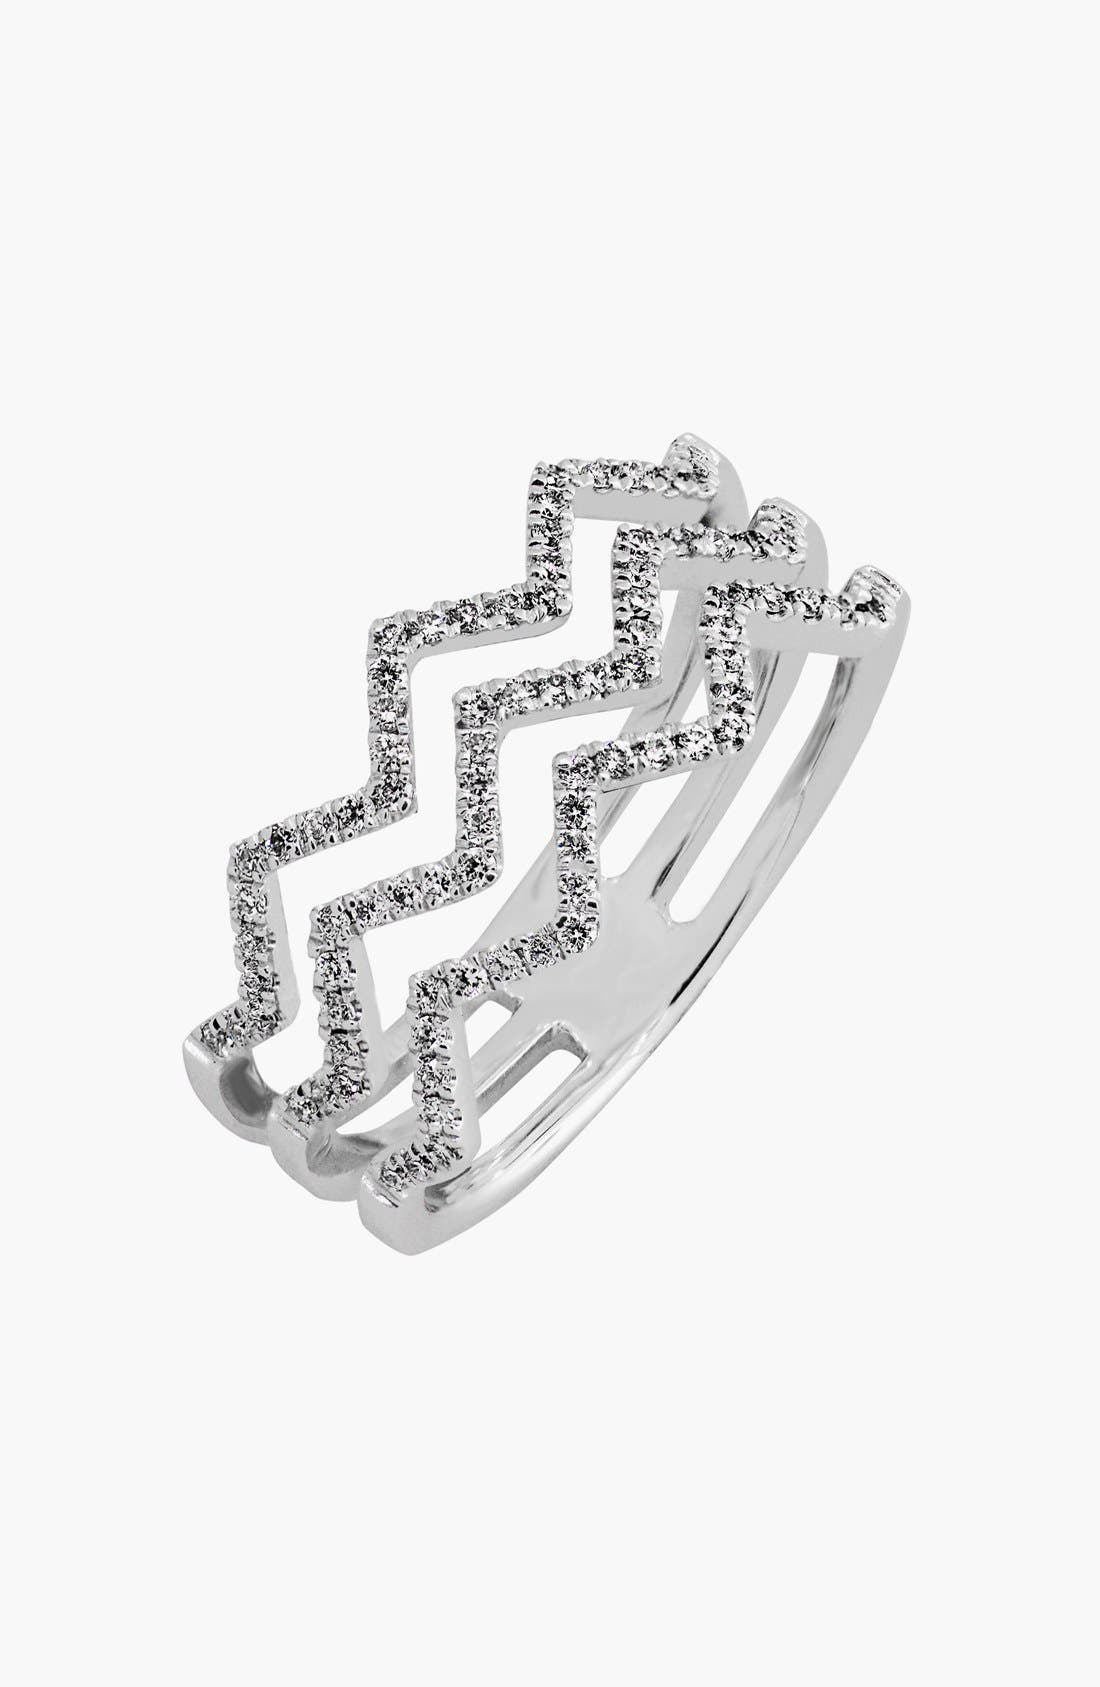 BONY LEVY 'Prism' 3-Row Diamond Ring